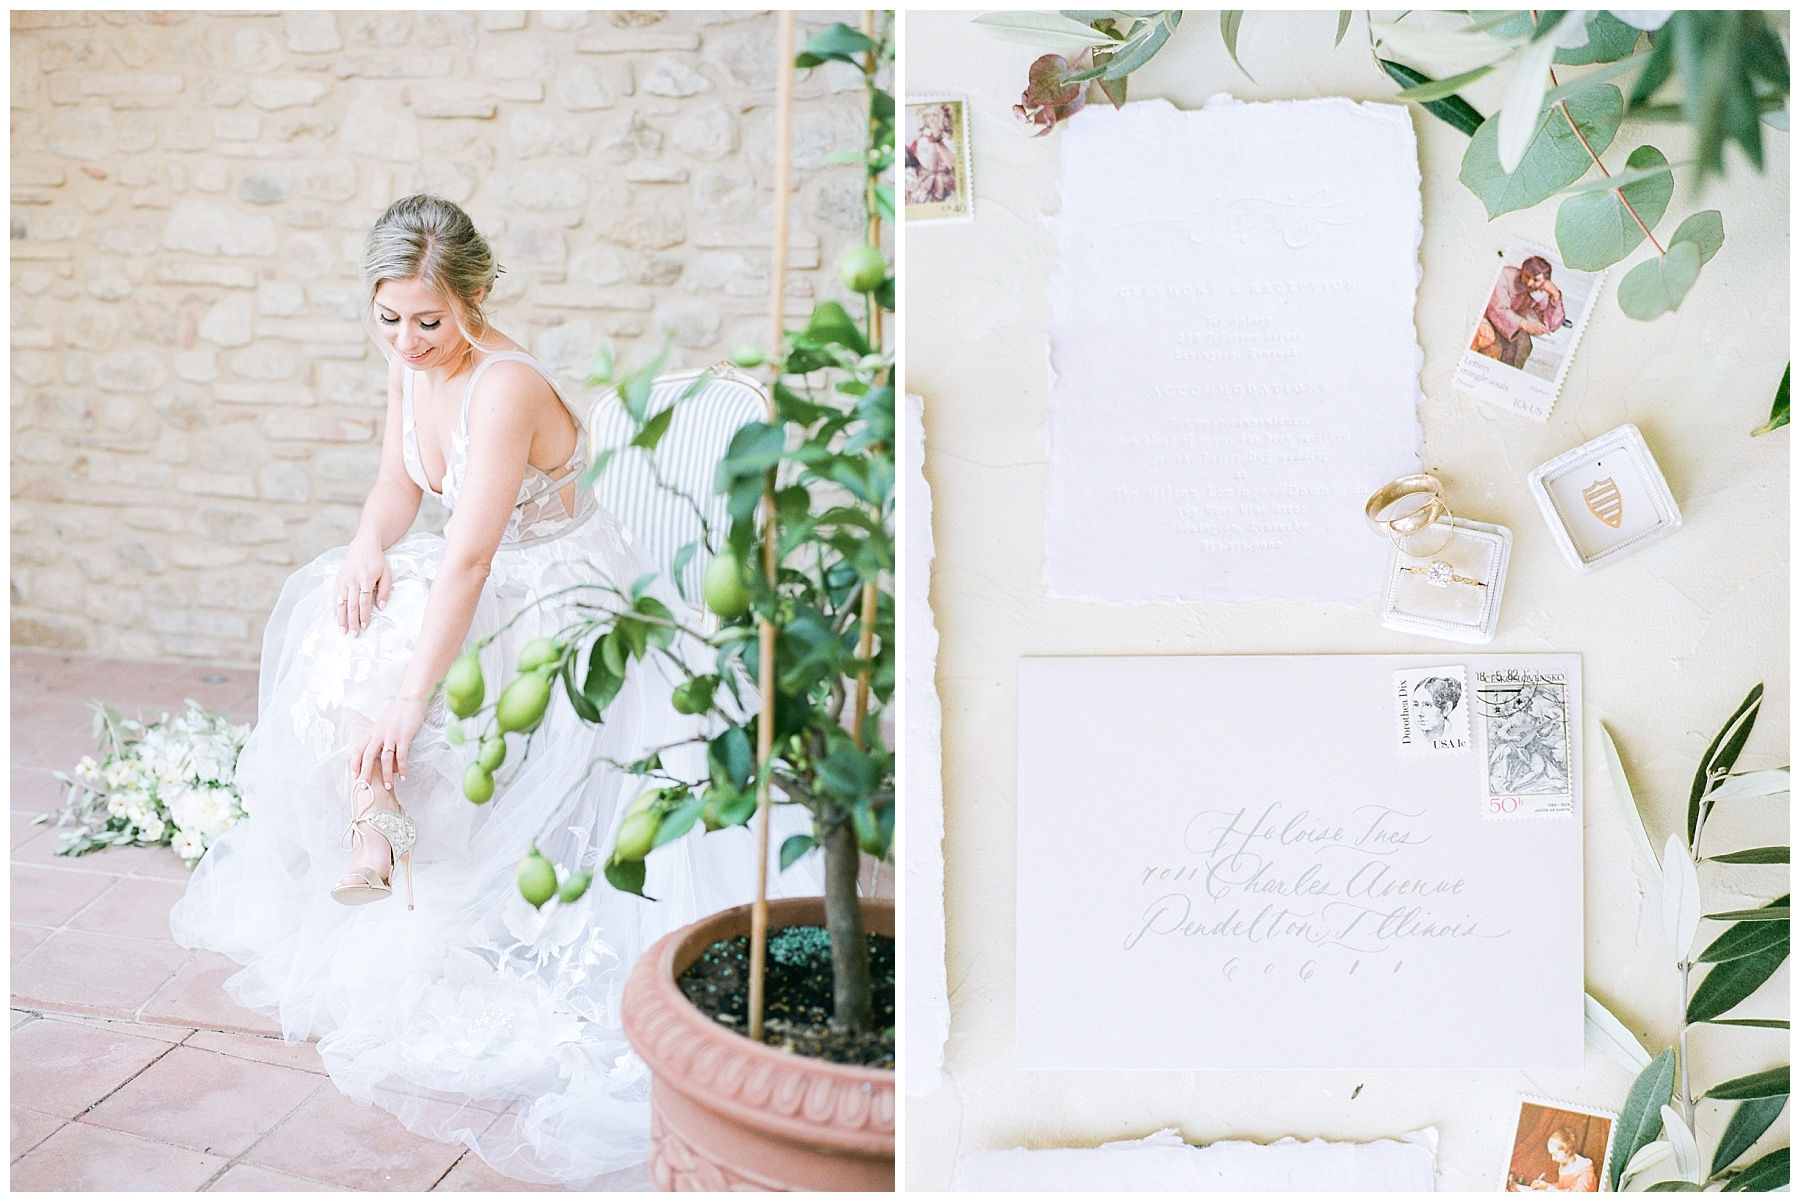 All White Destination Wedding in the Hills of Tuscany Italy at Estate Borgo Petrognano by Kelsi Kliethermes Photography_0032.jpg